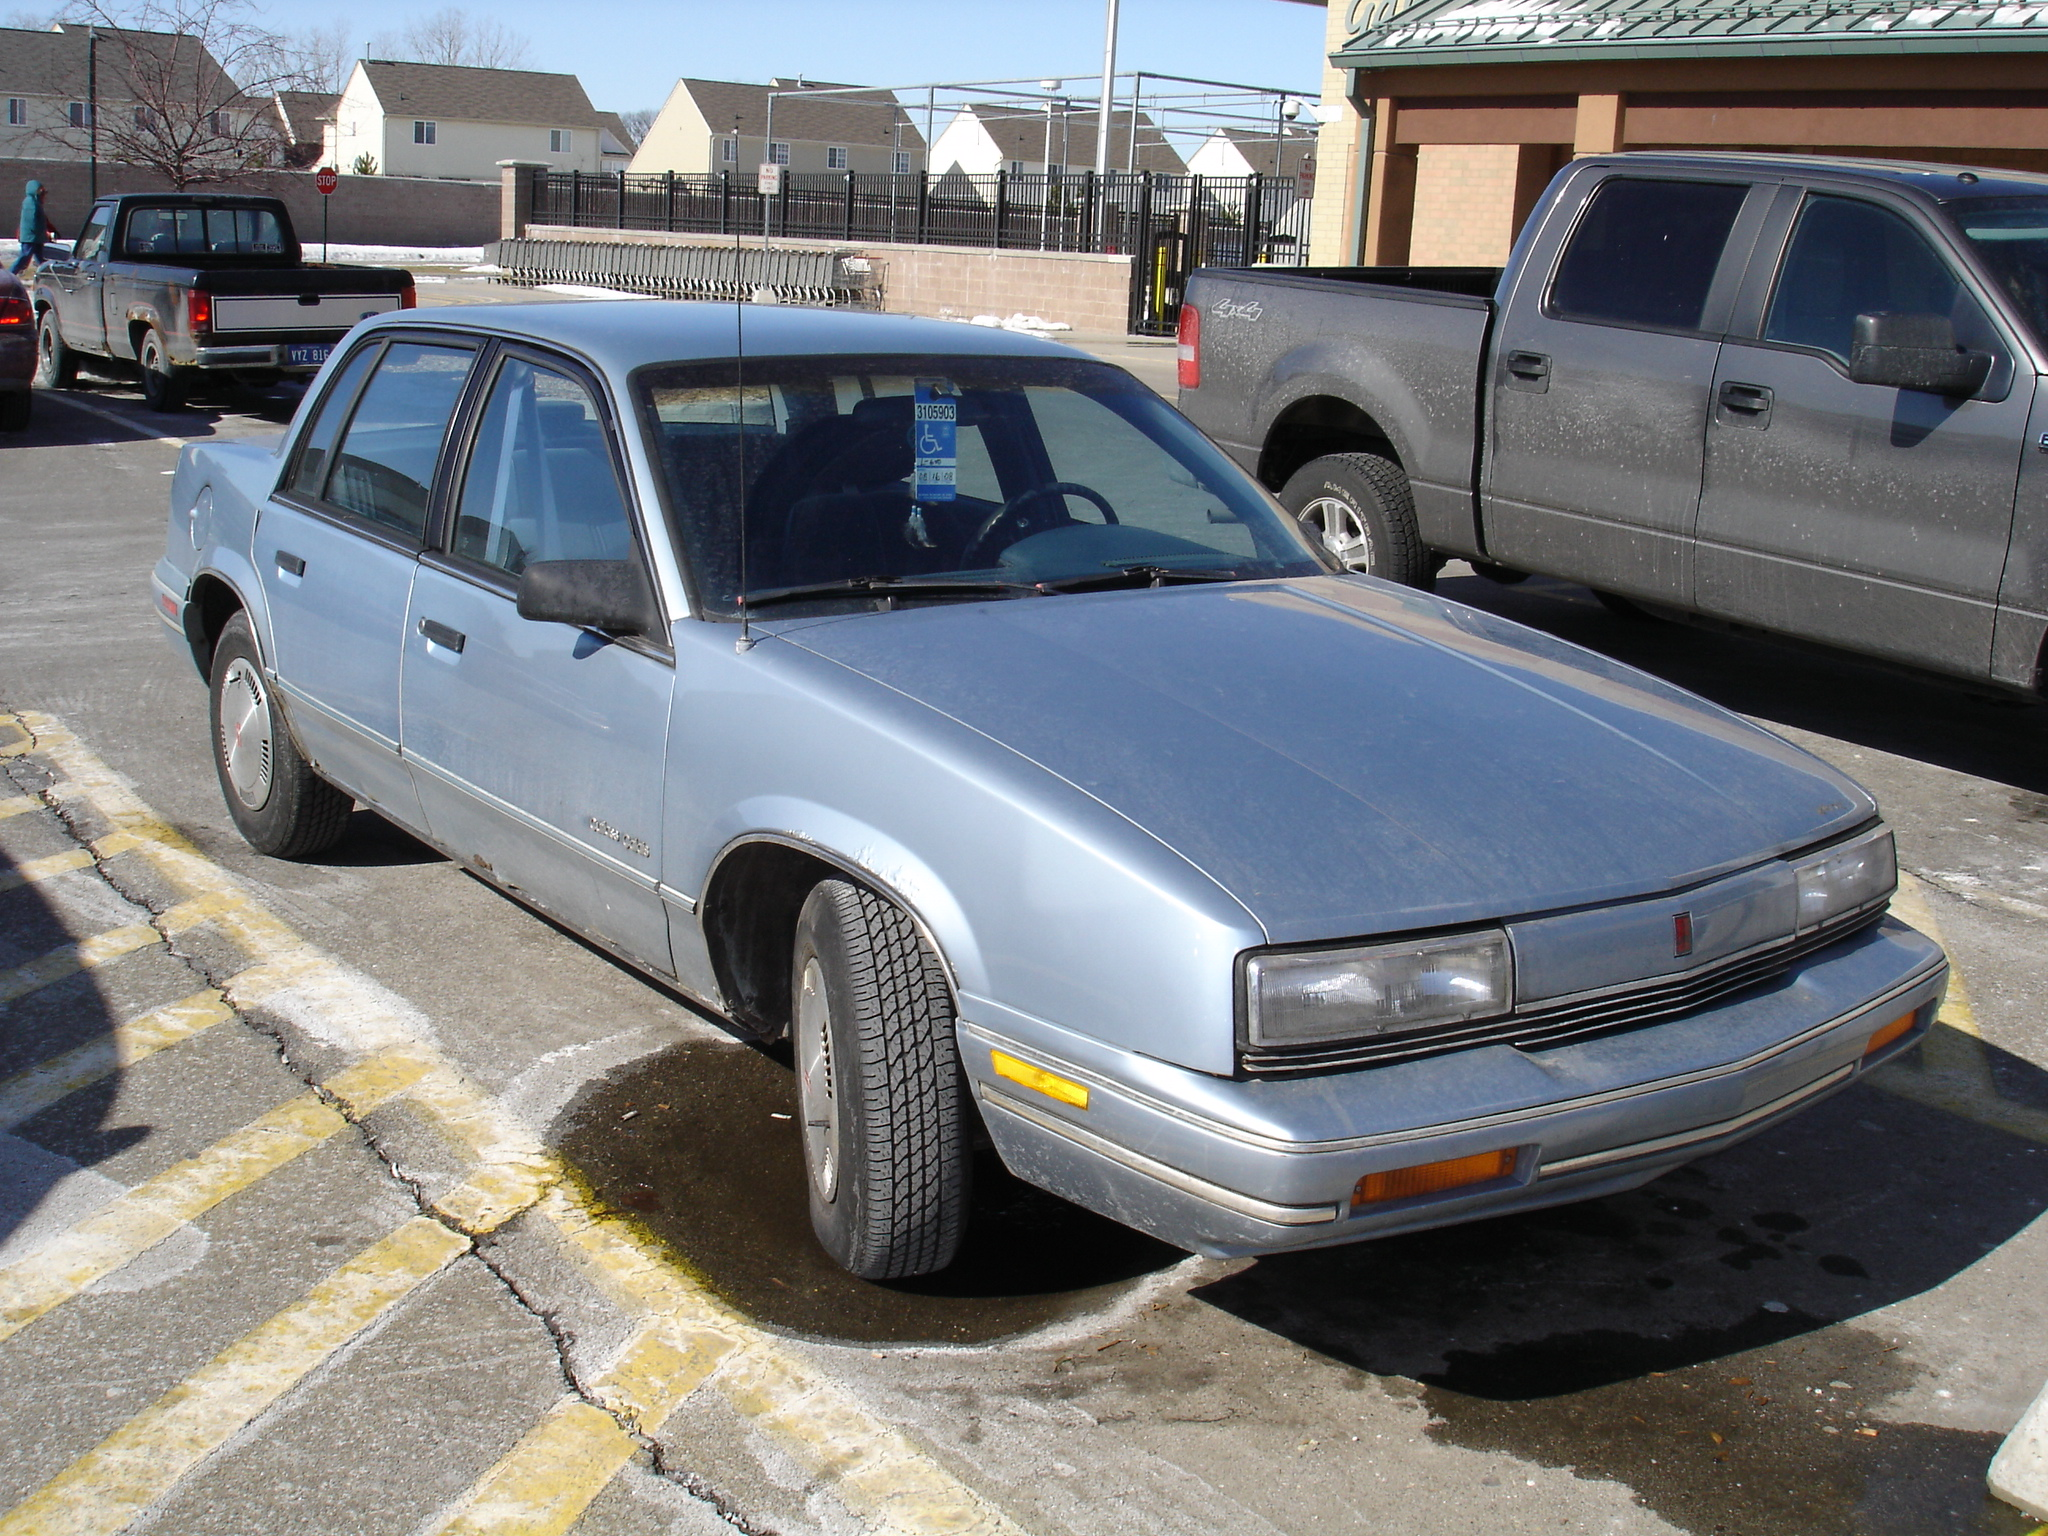 1989 oldsmobile cutlass calais information and photos momentcar. Black Bedroom Furniture Sets. Home Design Ideas